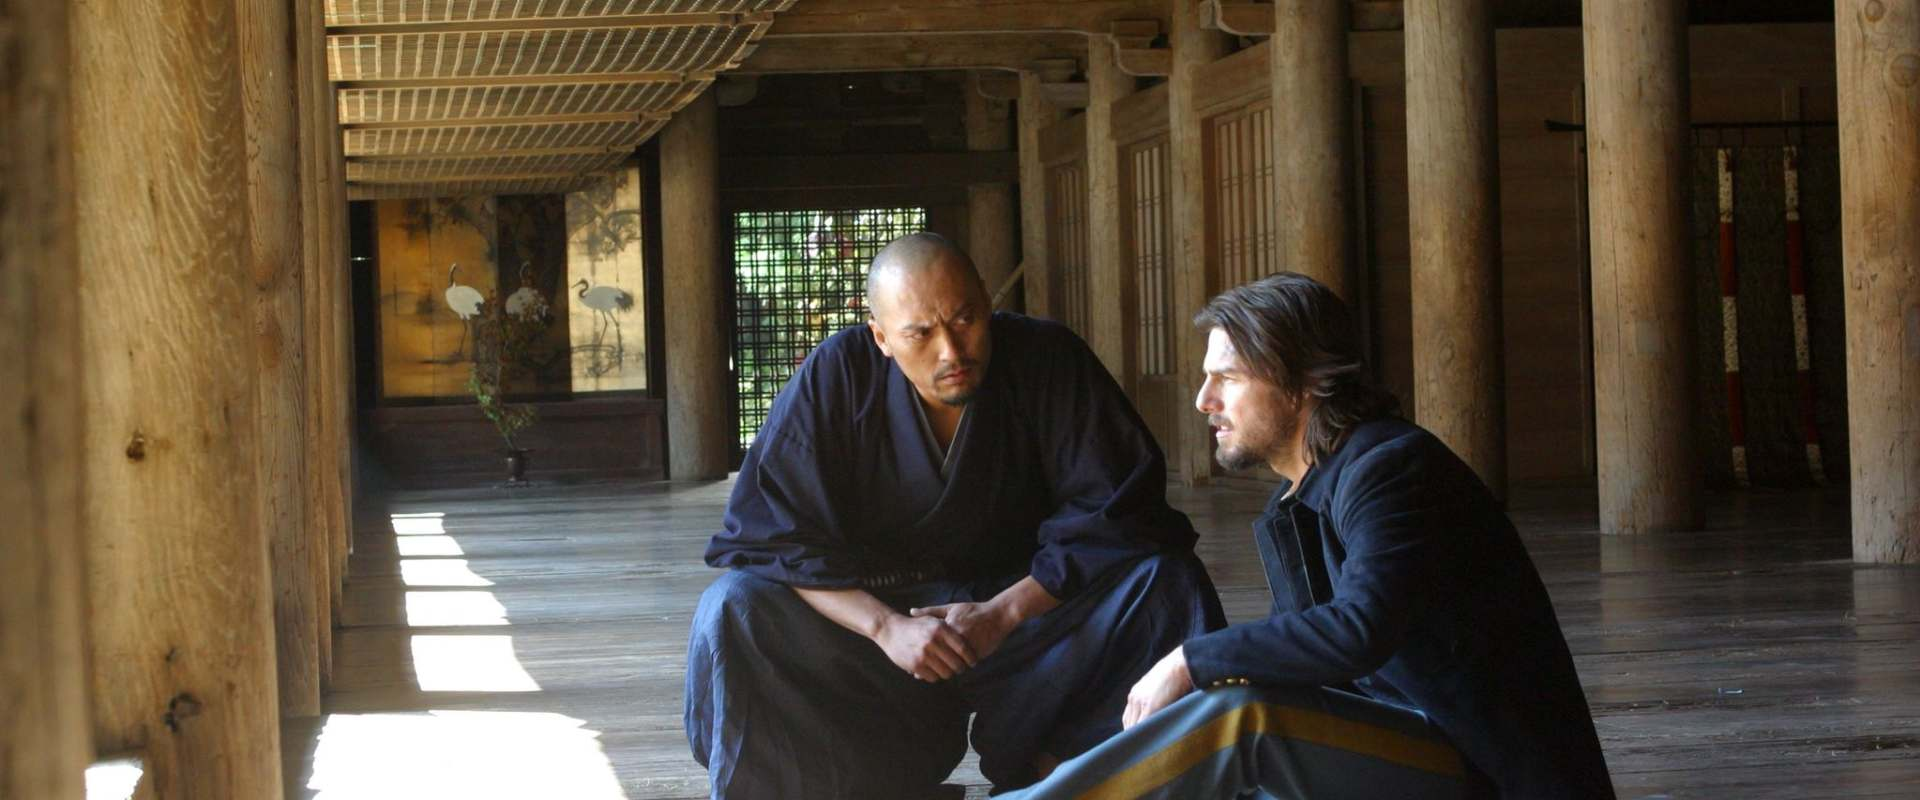 The Last Samurai background 2